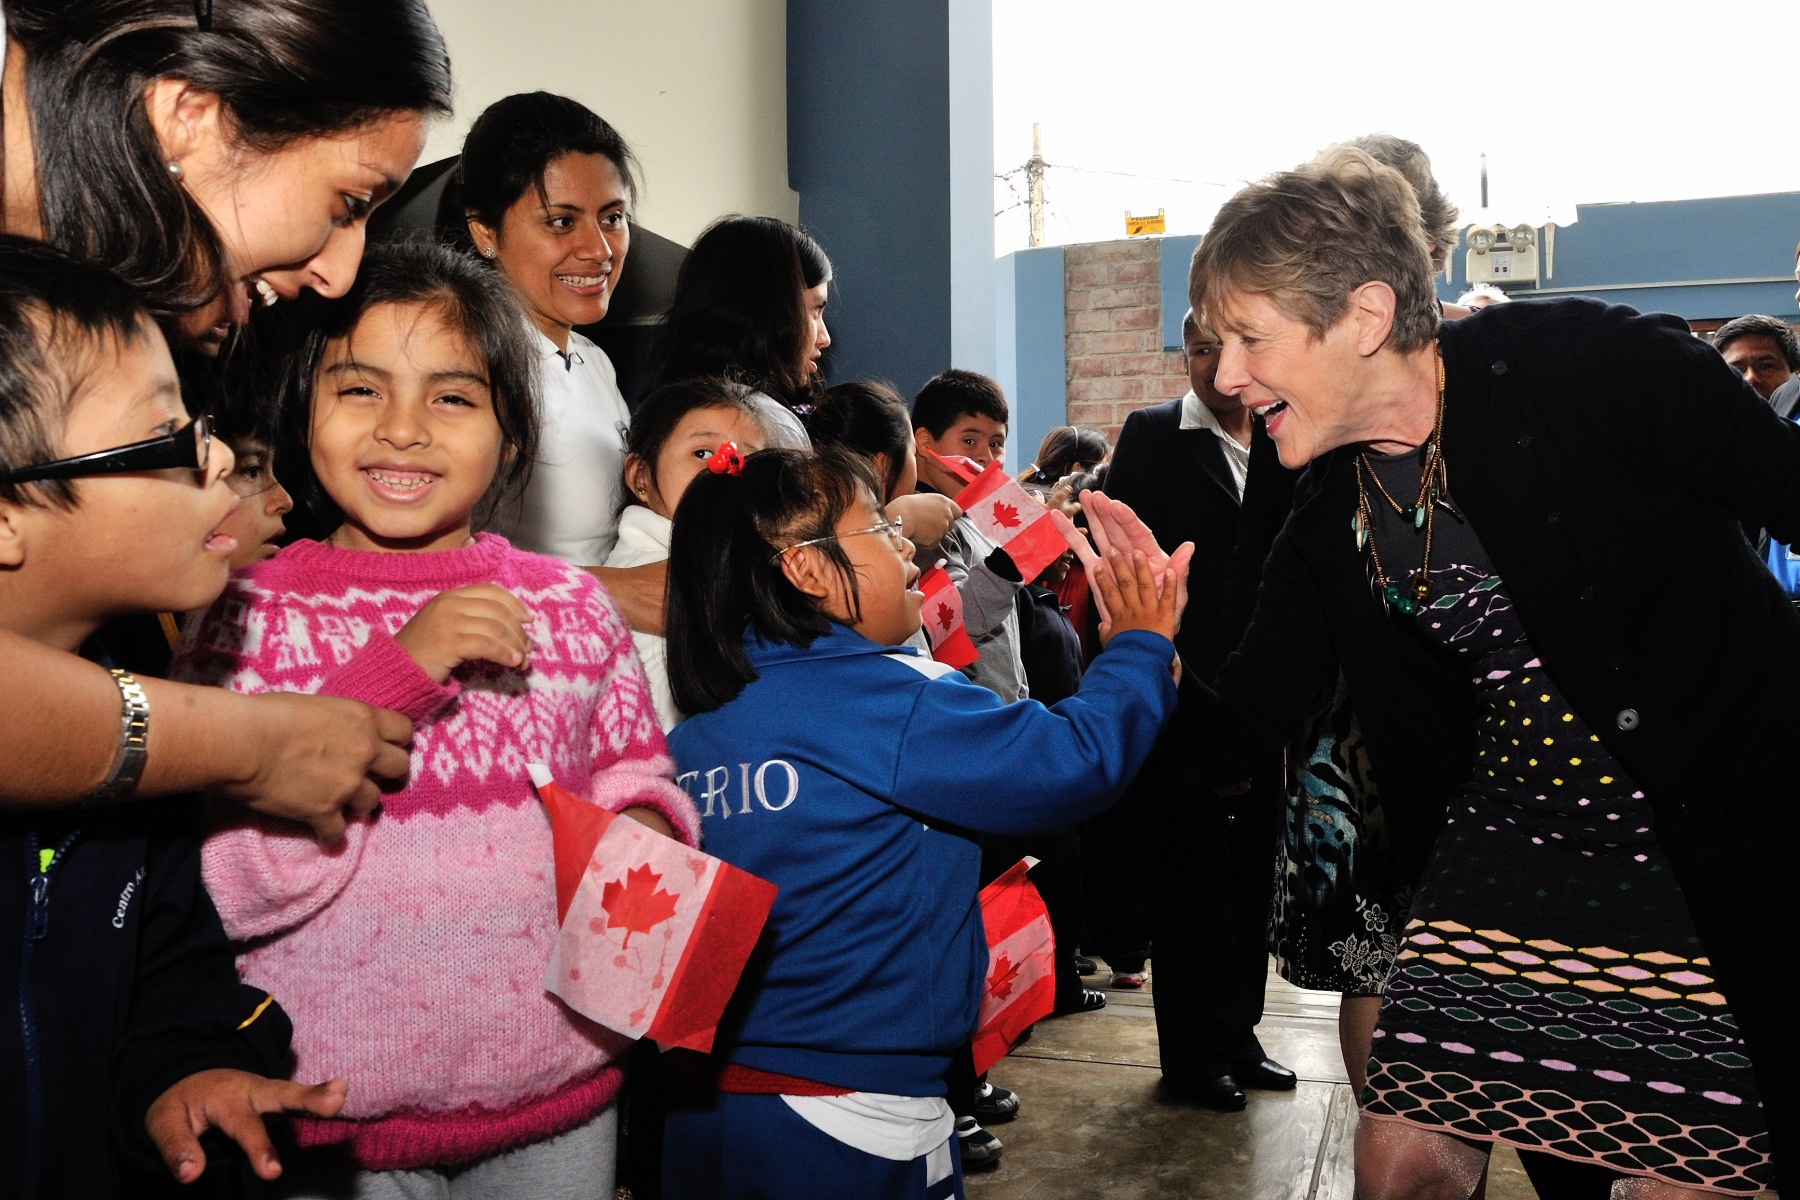 Her Excellency Sharon Johnston visited the Centro Ann Sullivan del Perú, an educational non-for-profit centre that serves individuals with autism, Down syndrome, cerebral palsy or developmental delays, as well as their families.